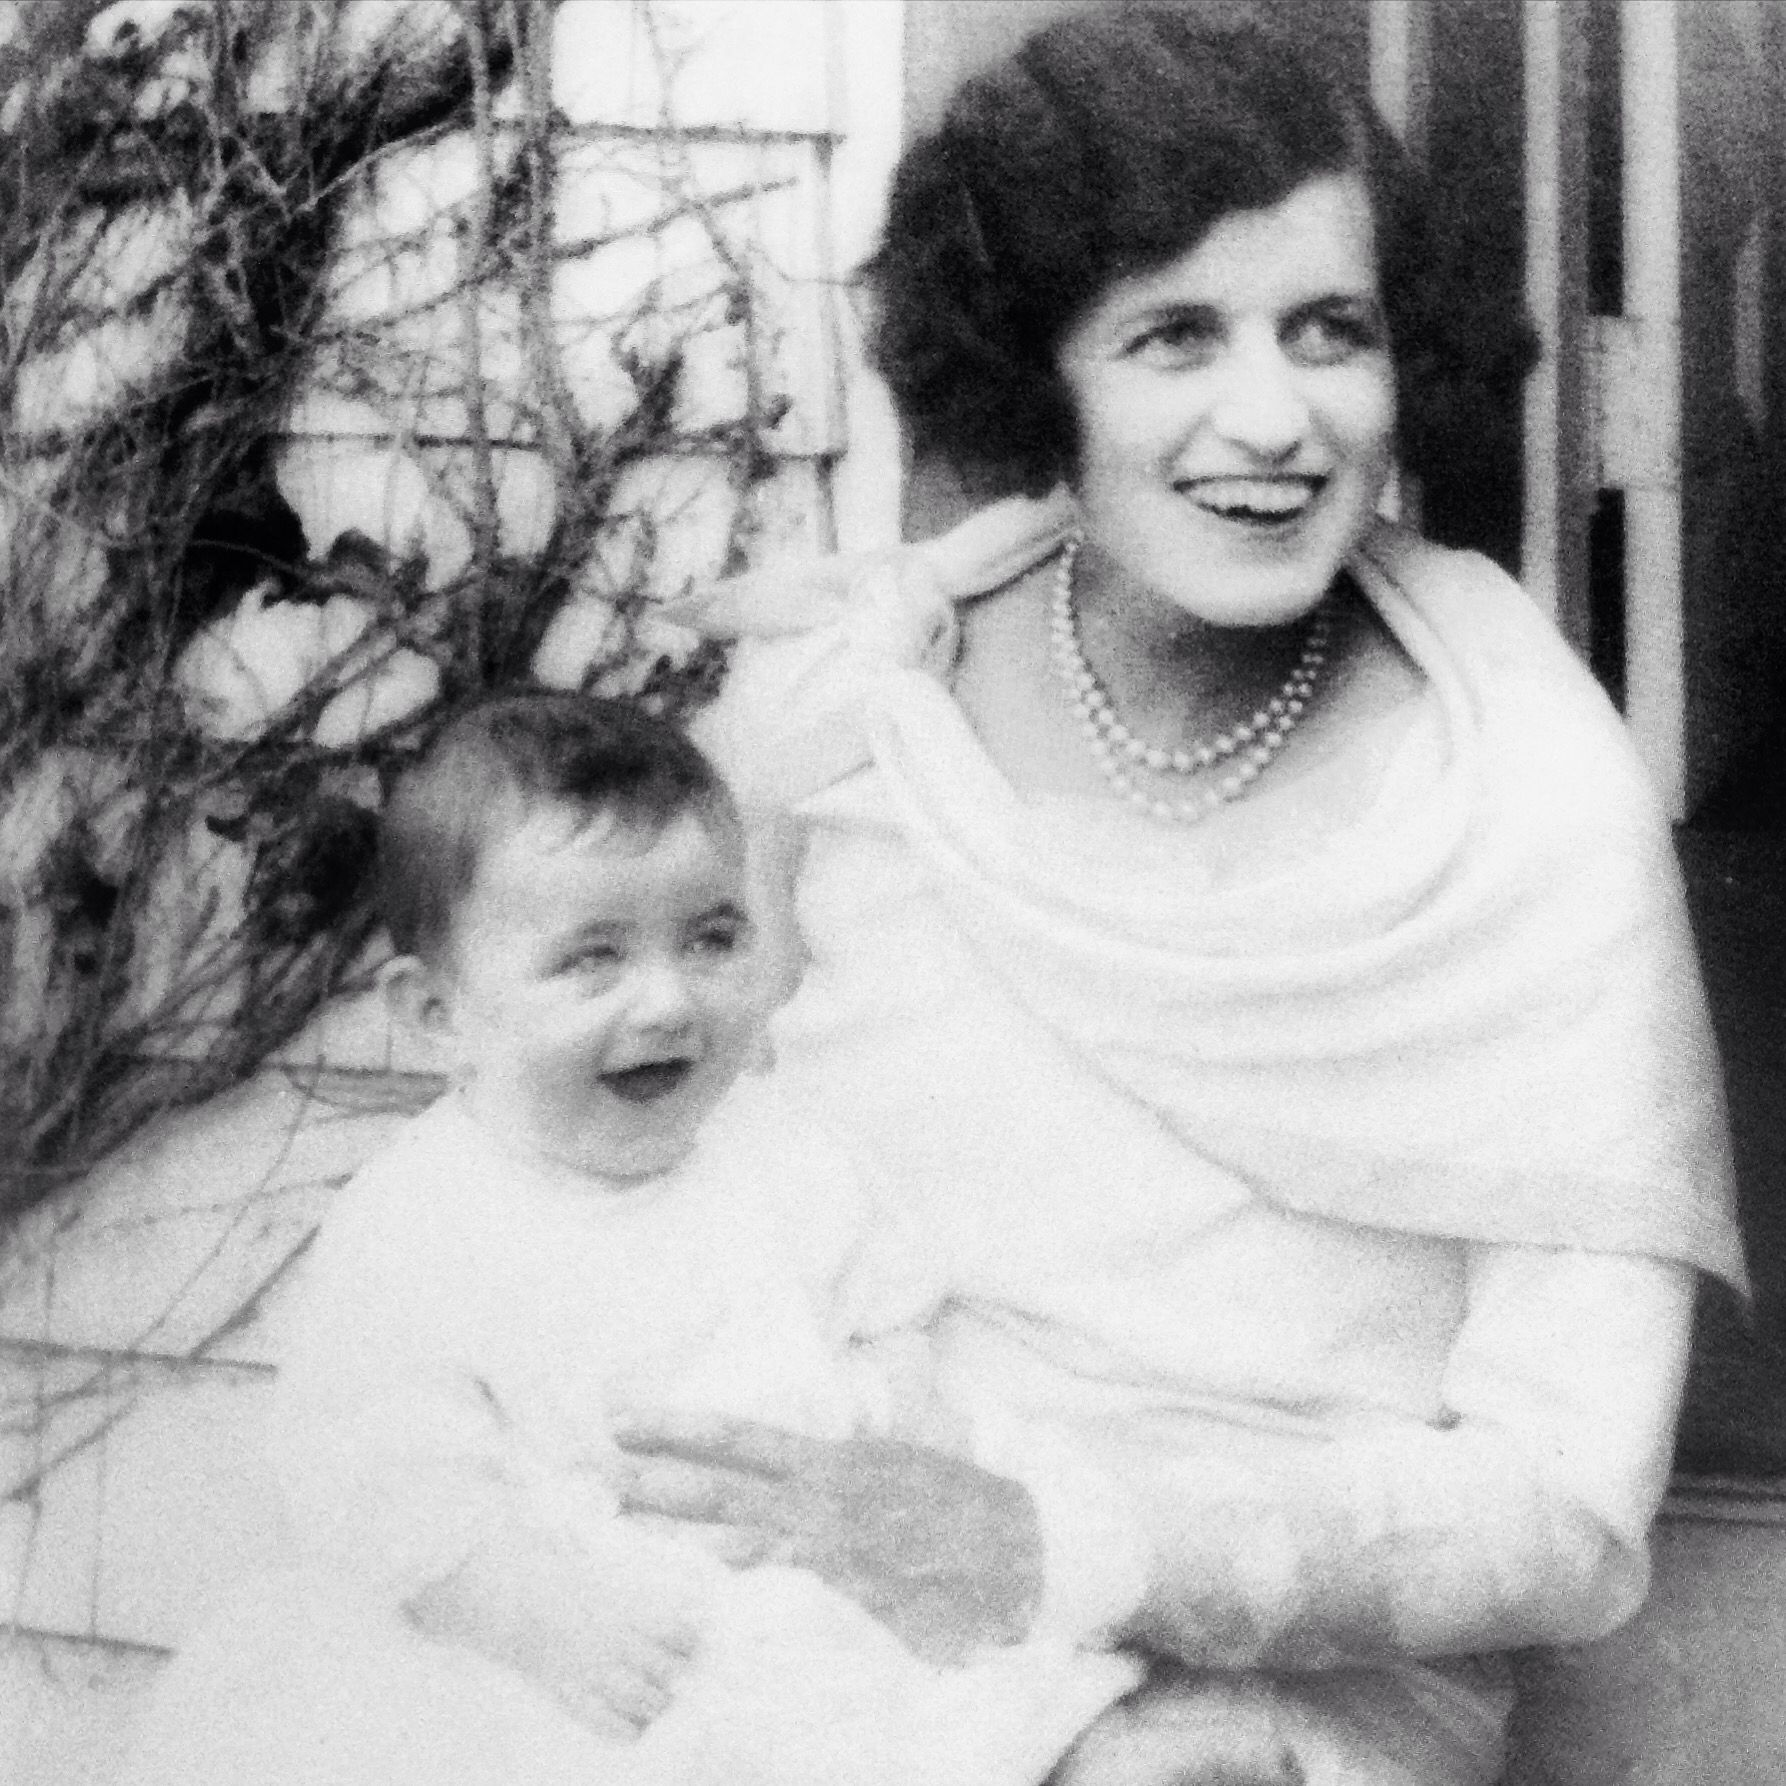 Jean and Rose Kennedy